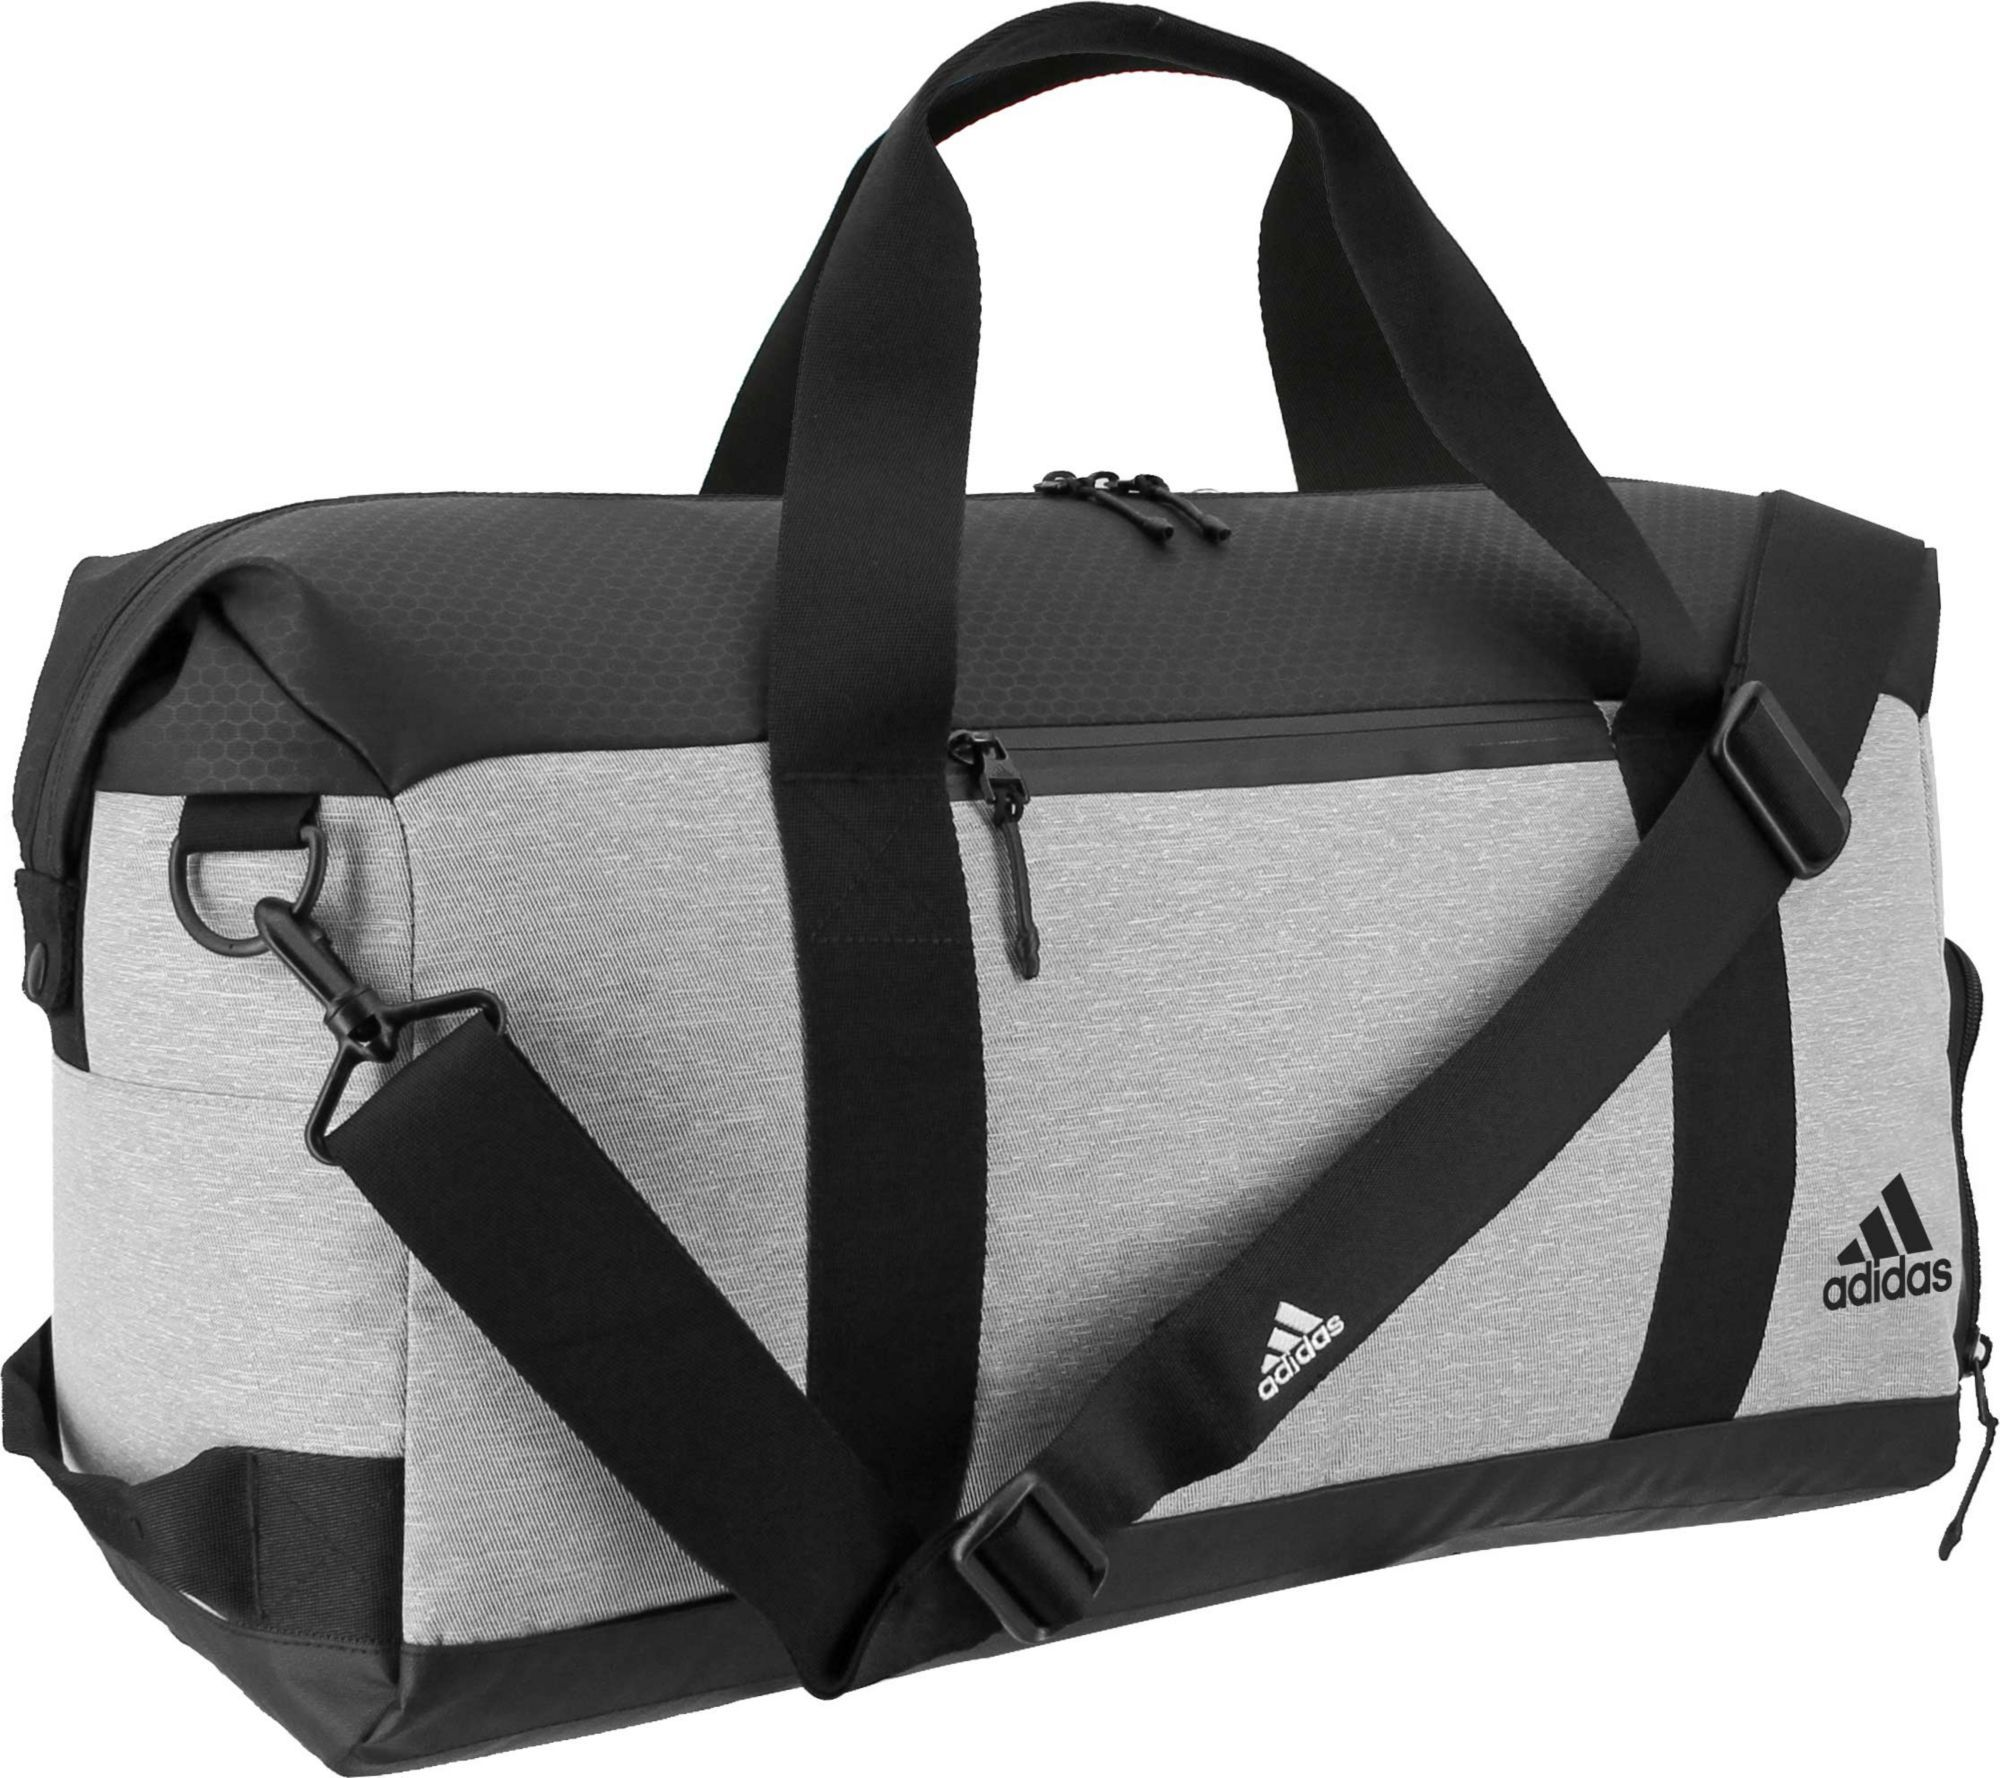 7e300160af adidas Sport ID Duffle Bag in 2019 | Products | Adidas duffle bag ...